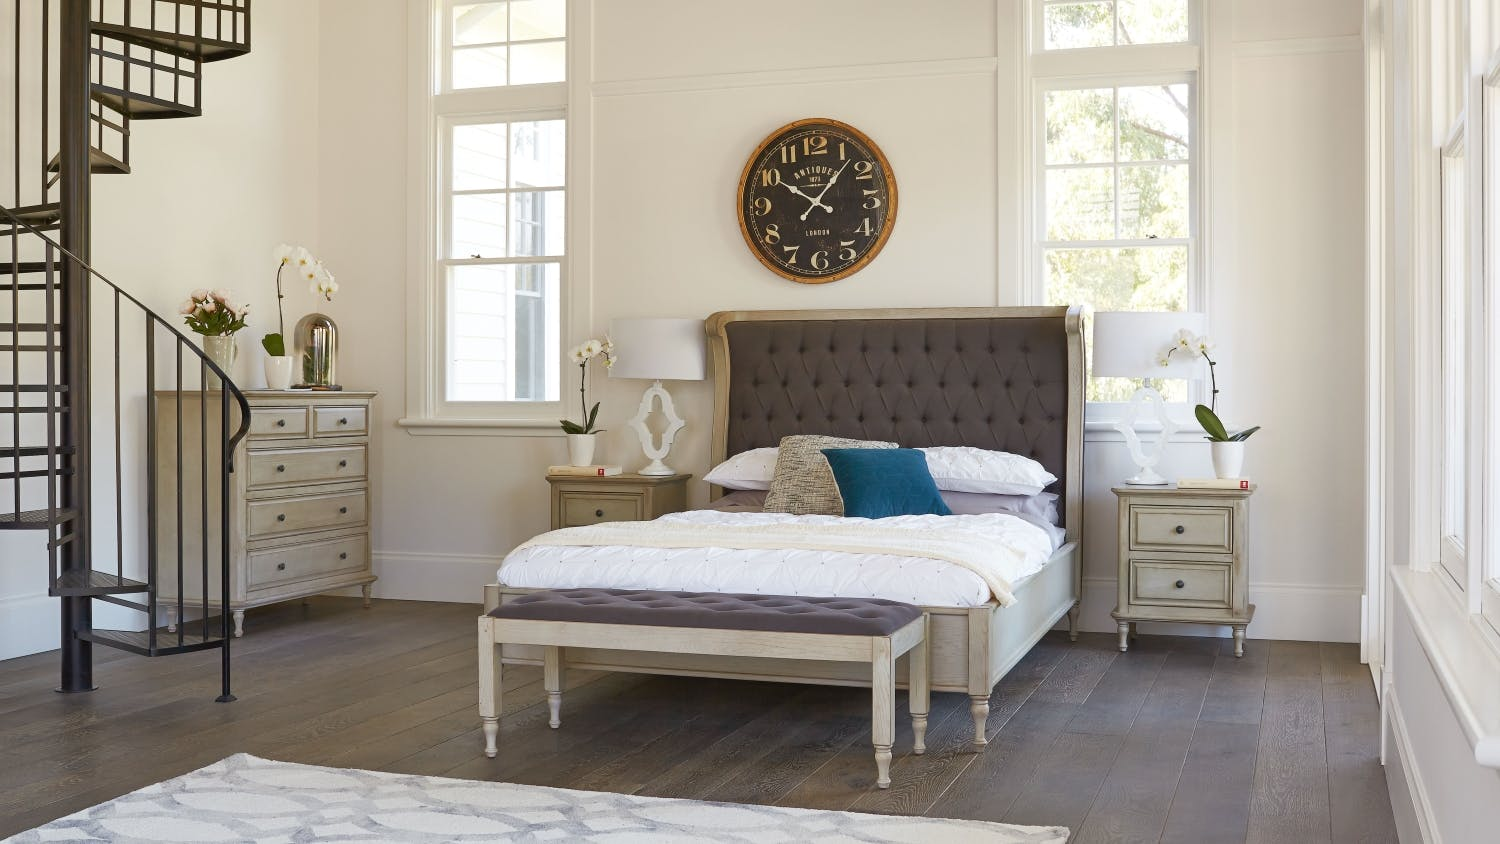 Marseille Bedroom Furniture Marseille Bed Frame Domayne